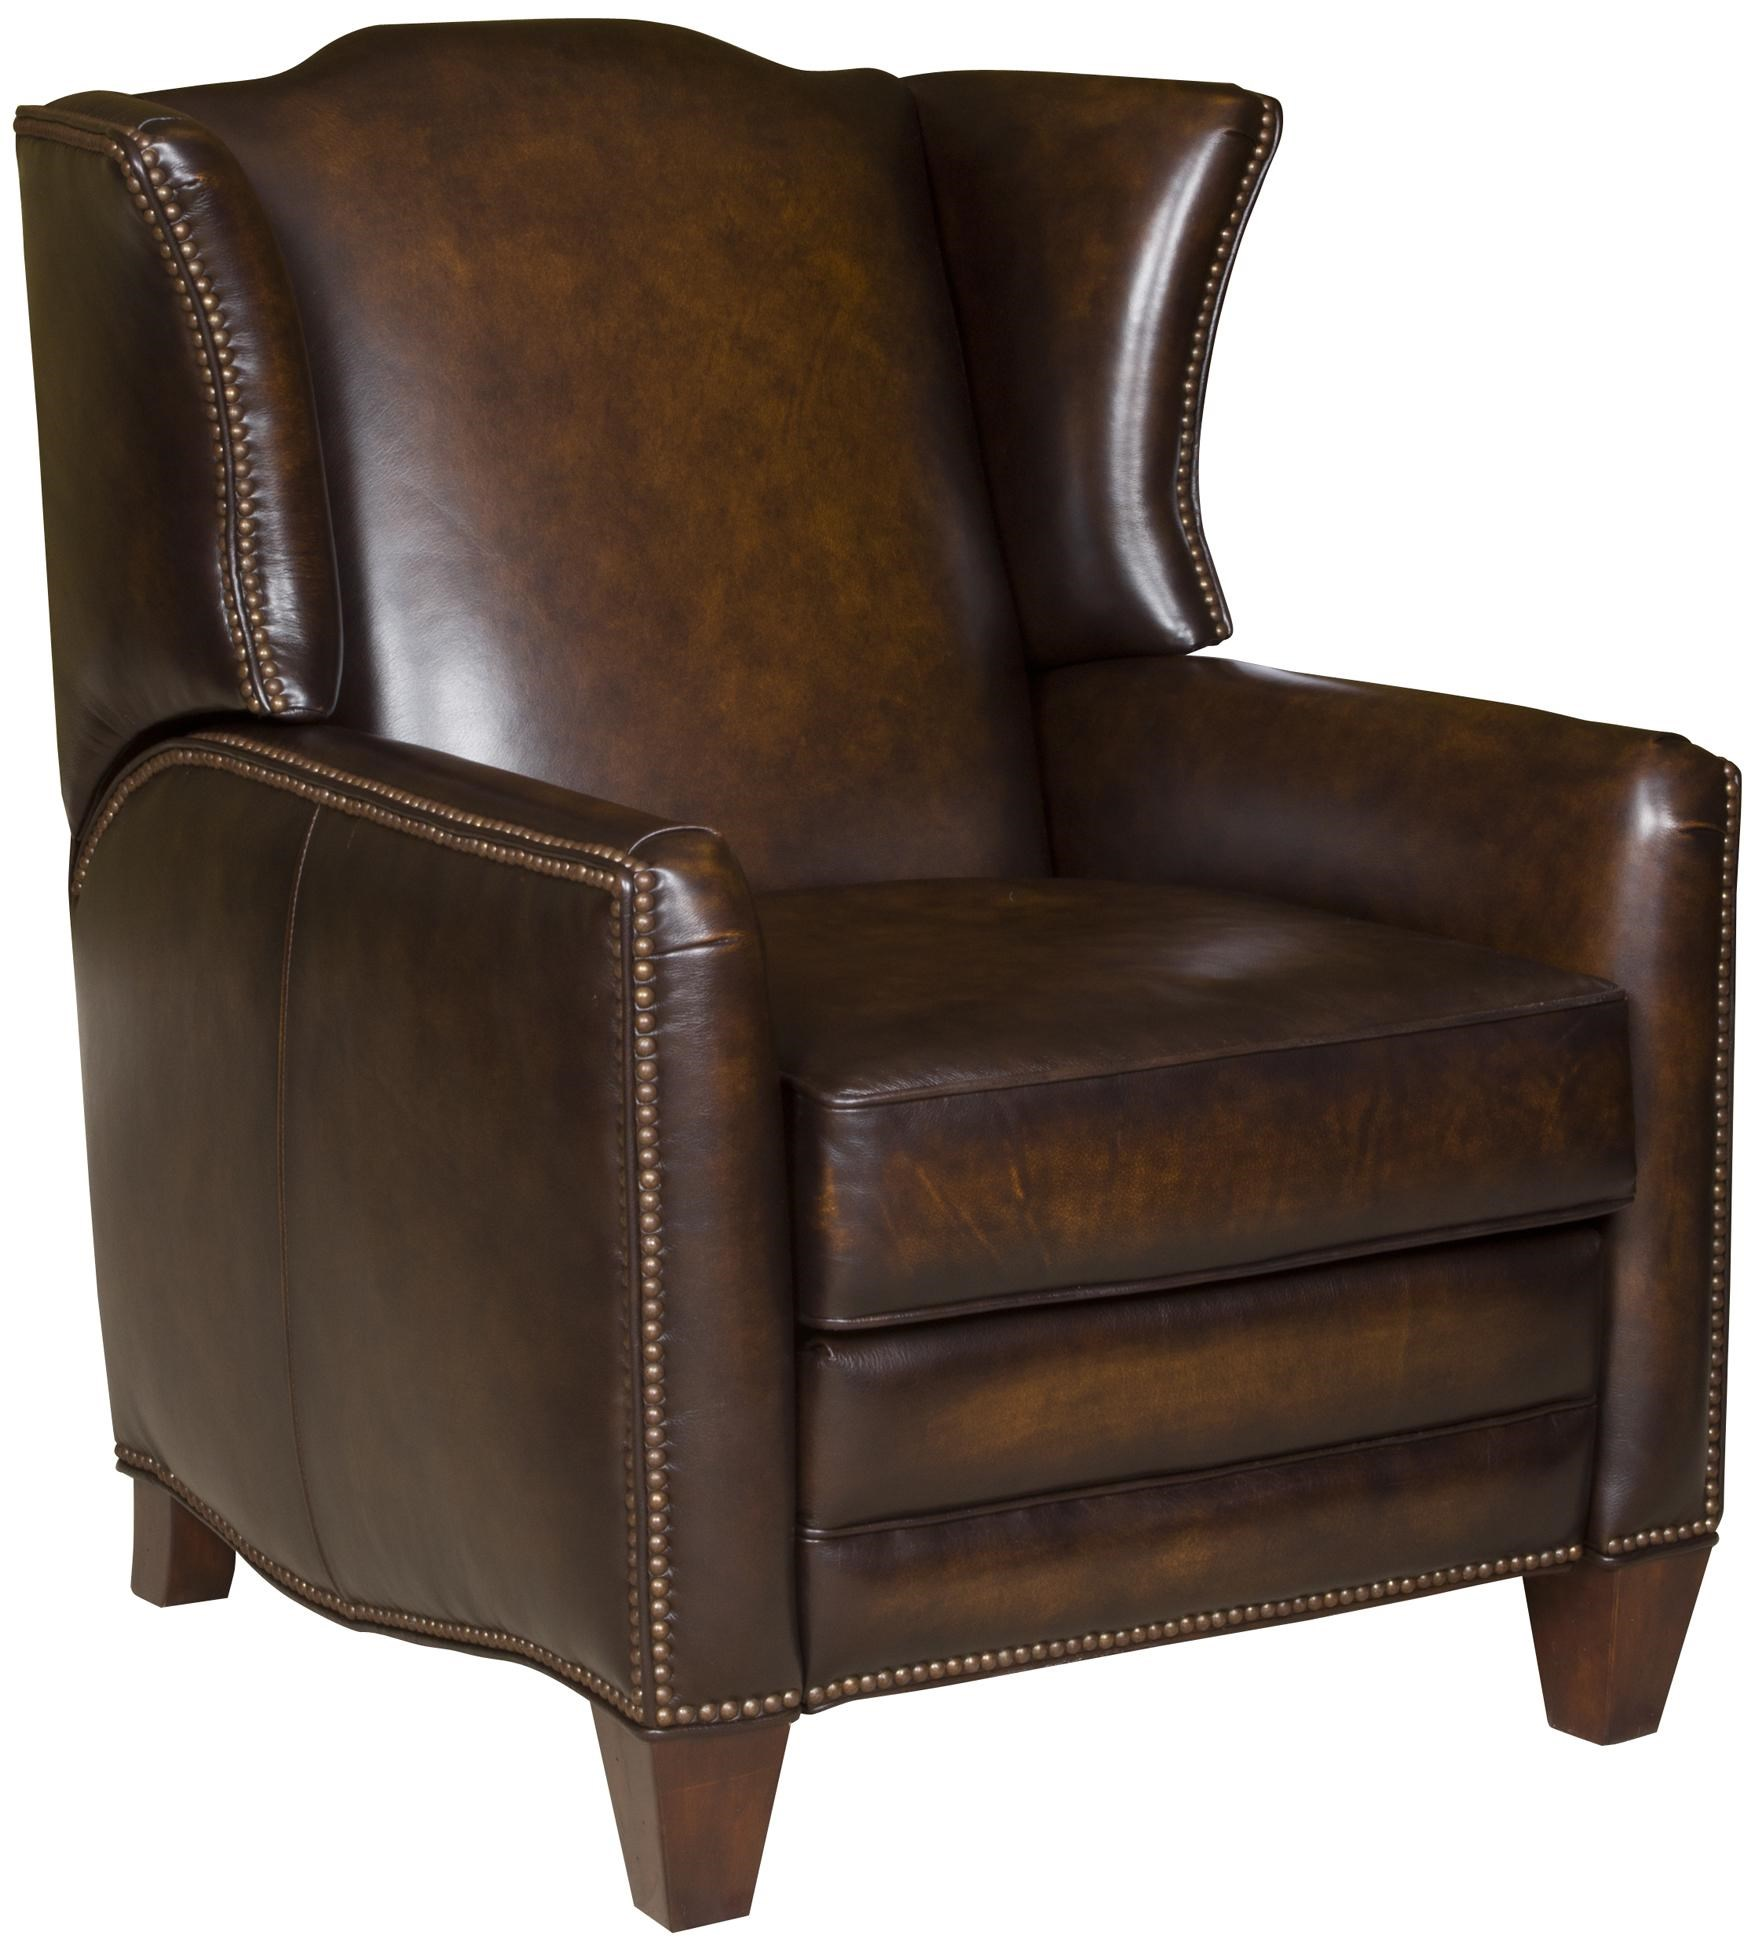 reclining accent chair target bedroom chairs king hickory and ottomans 5777r traditional styled ottomansathens recliner